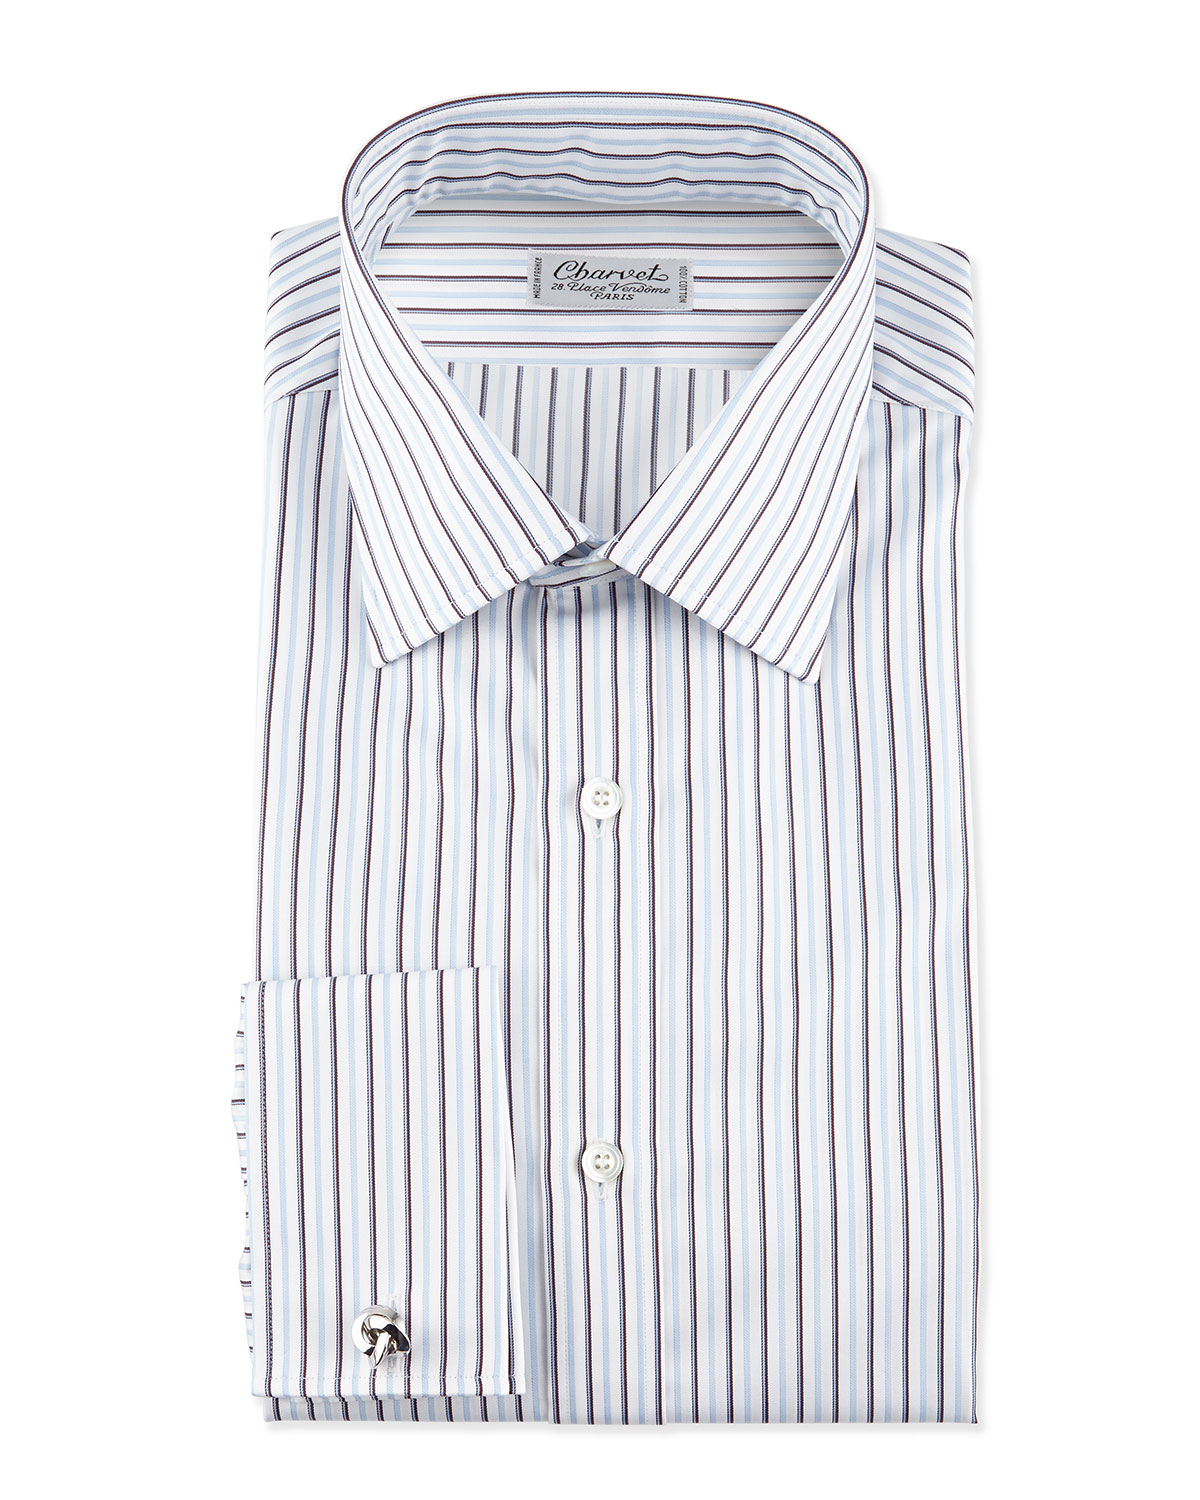 Trending Collar Bar Shirts With Holes